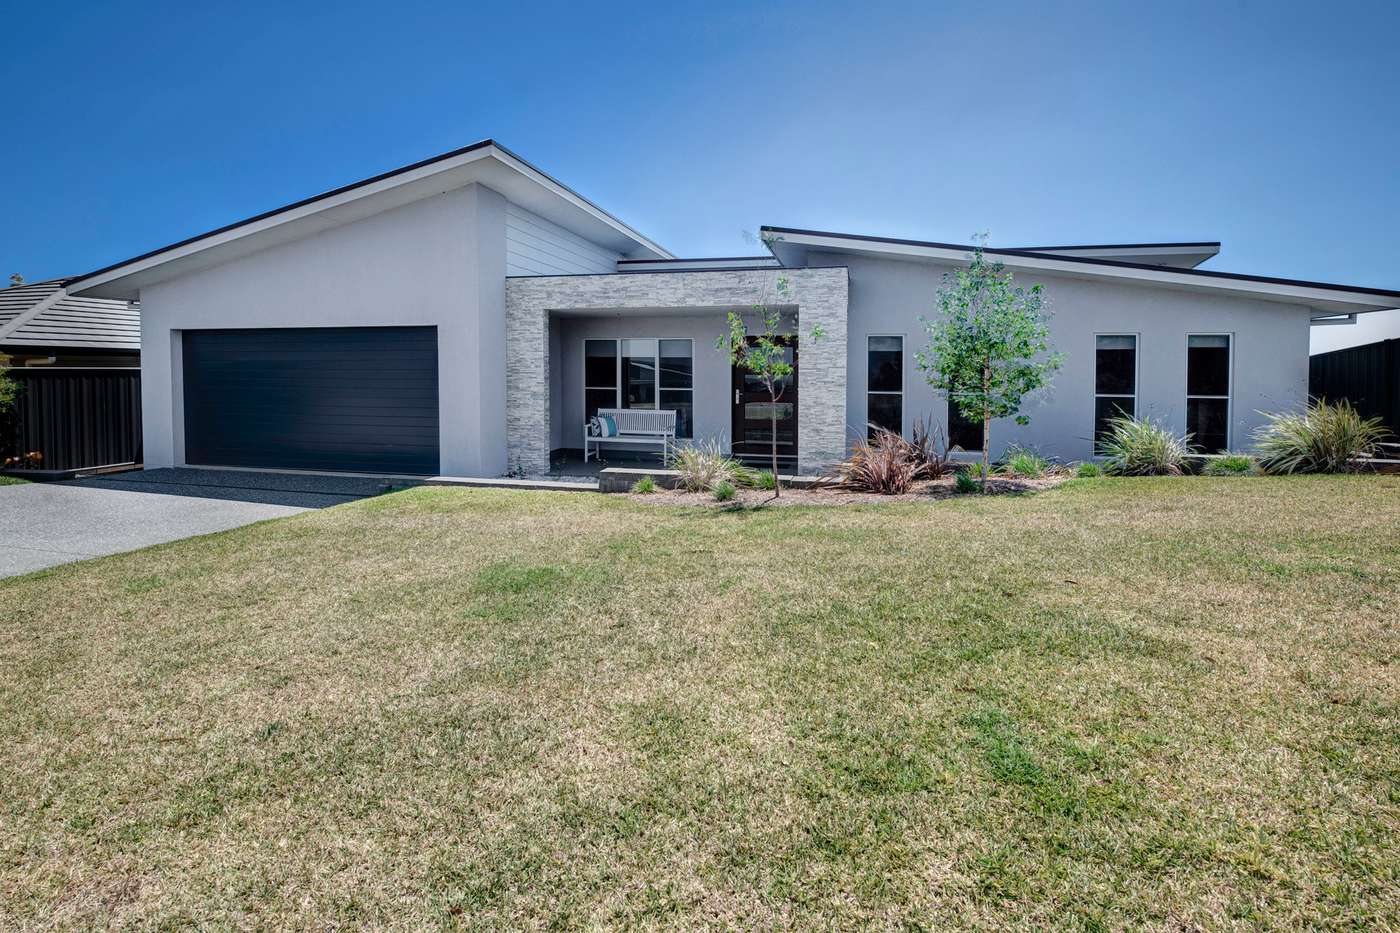 Main view of Homely house listing, 16 Eastern Valley Way, Tallwoods Village, NSW 2430